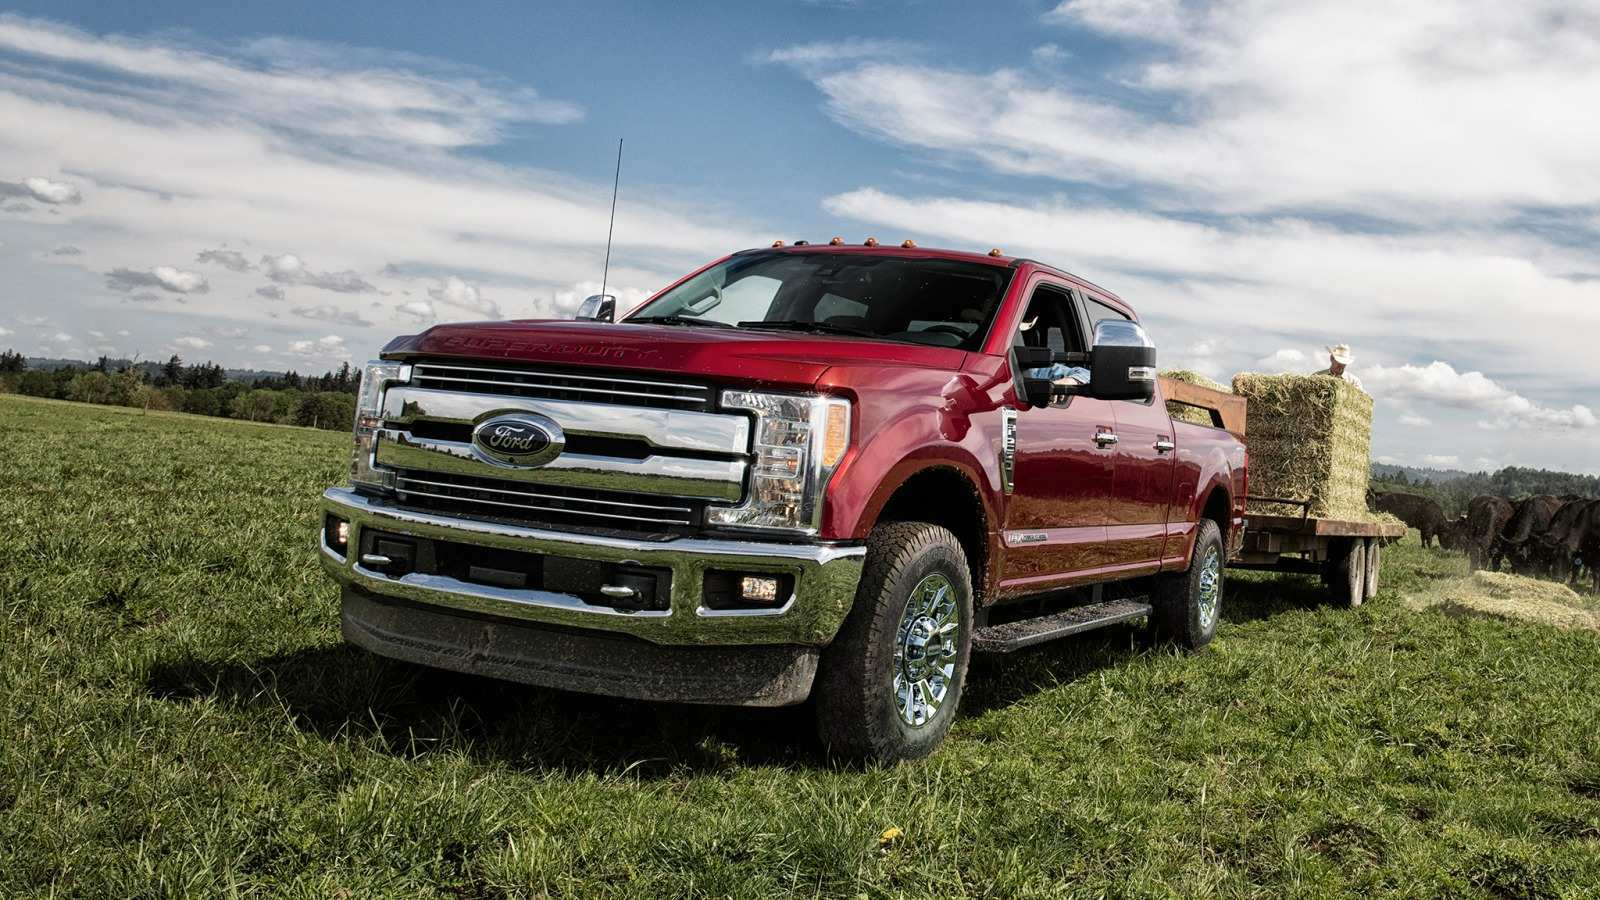 91 Best Review Best 2019 Ford F250 Release Date Review Specs And Release Date Speed Test by Best 2019 Ford F250 Release Date Review Specs And Release Date